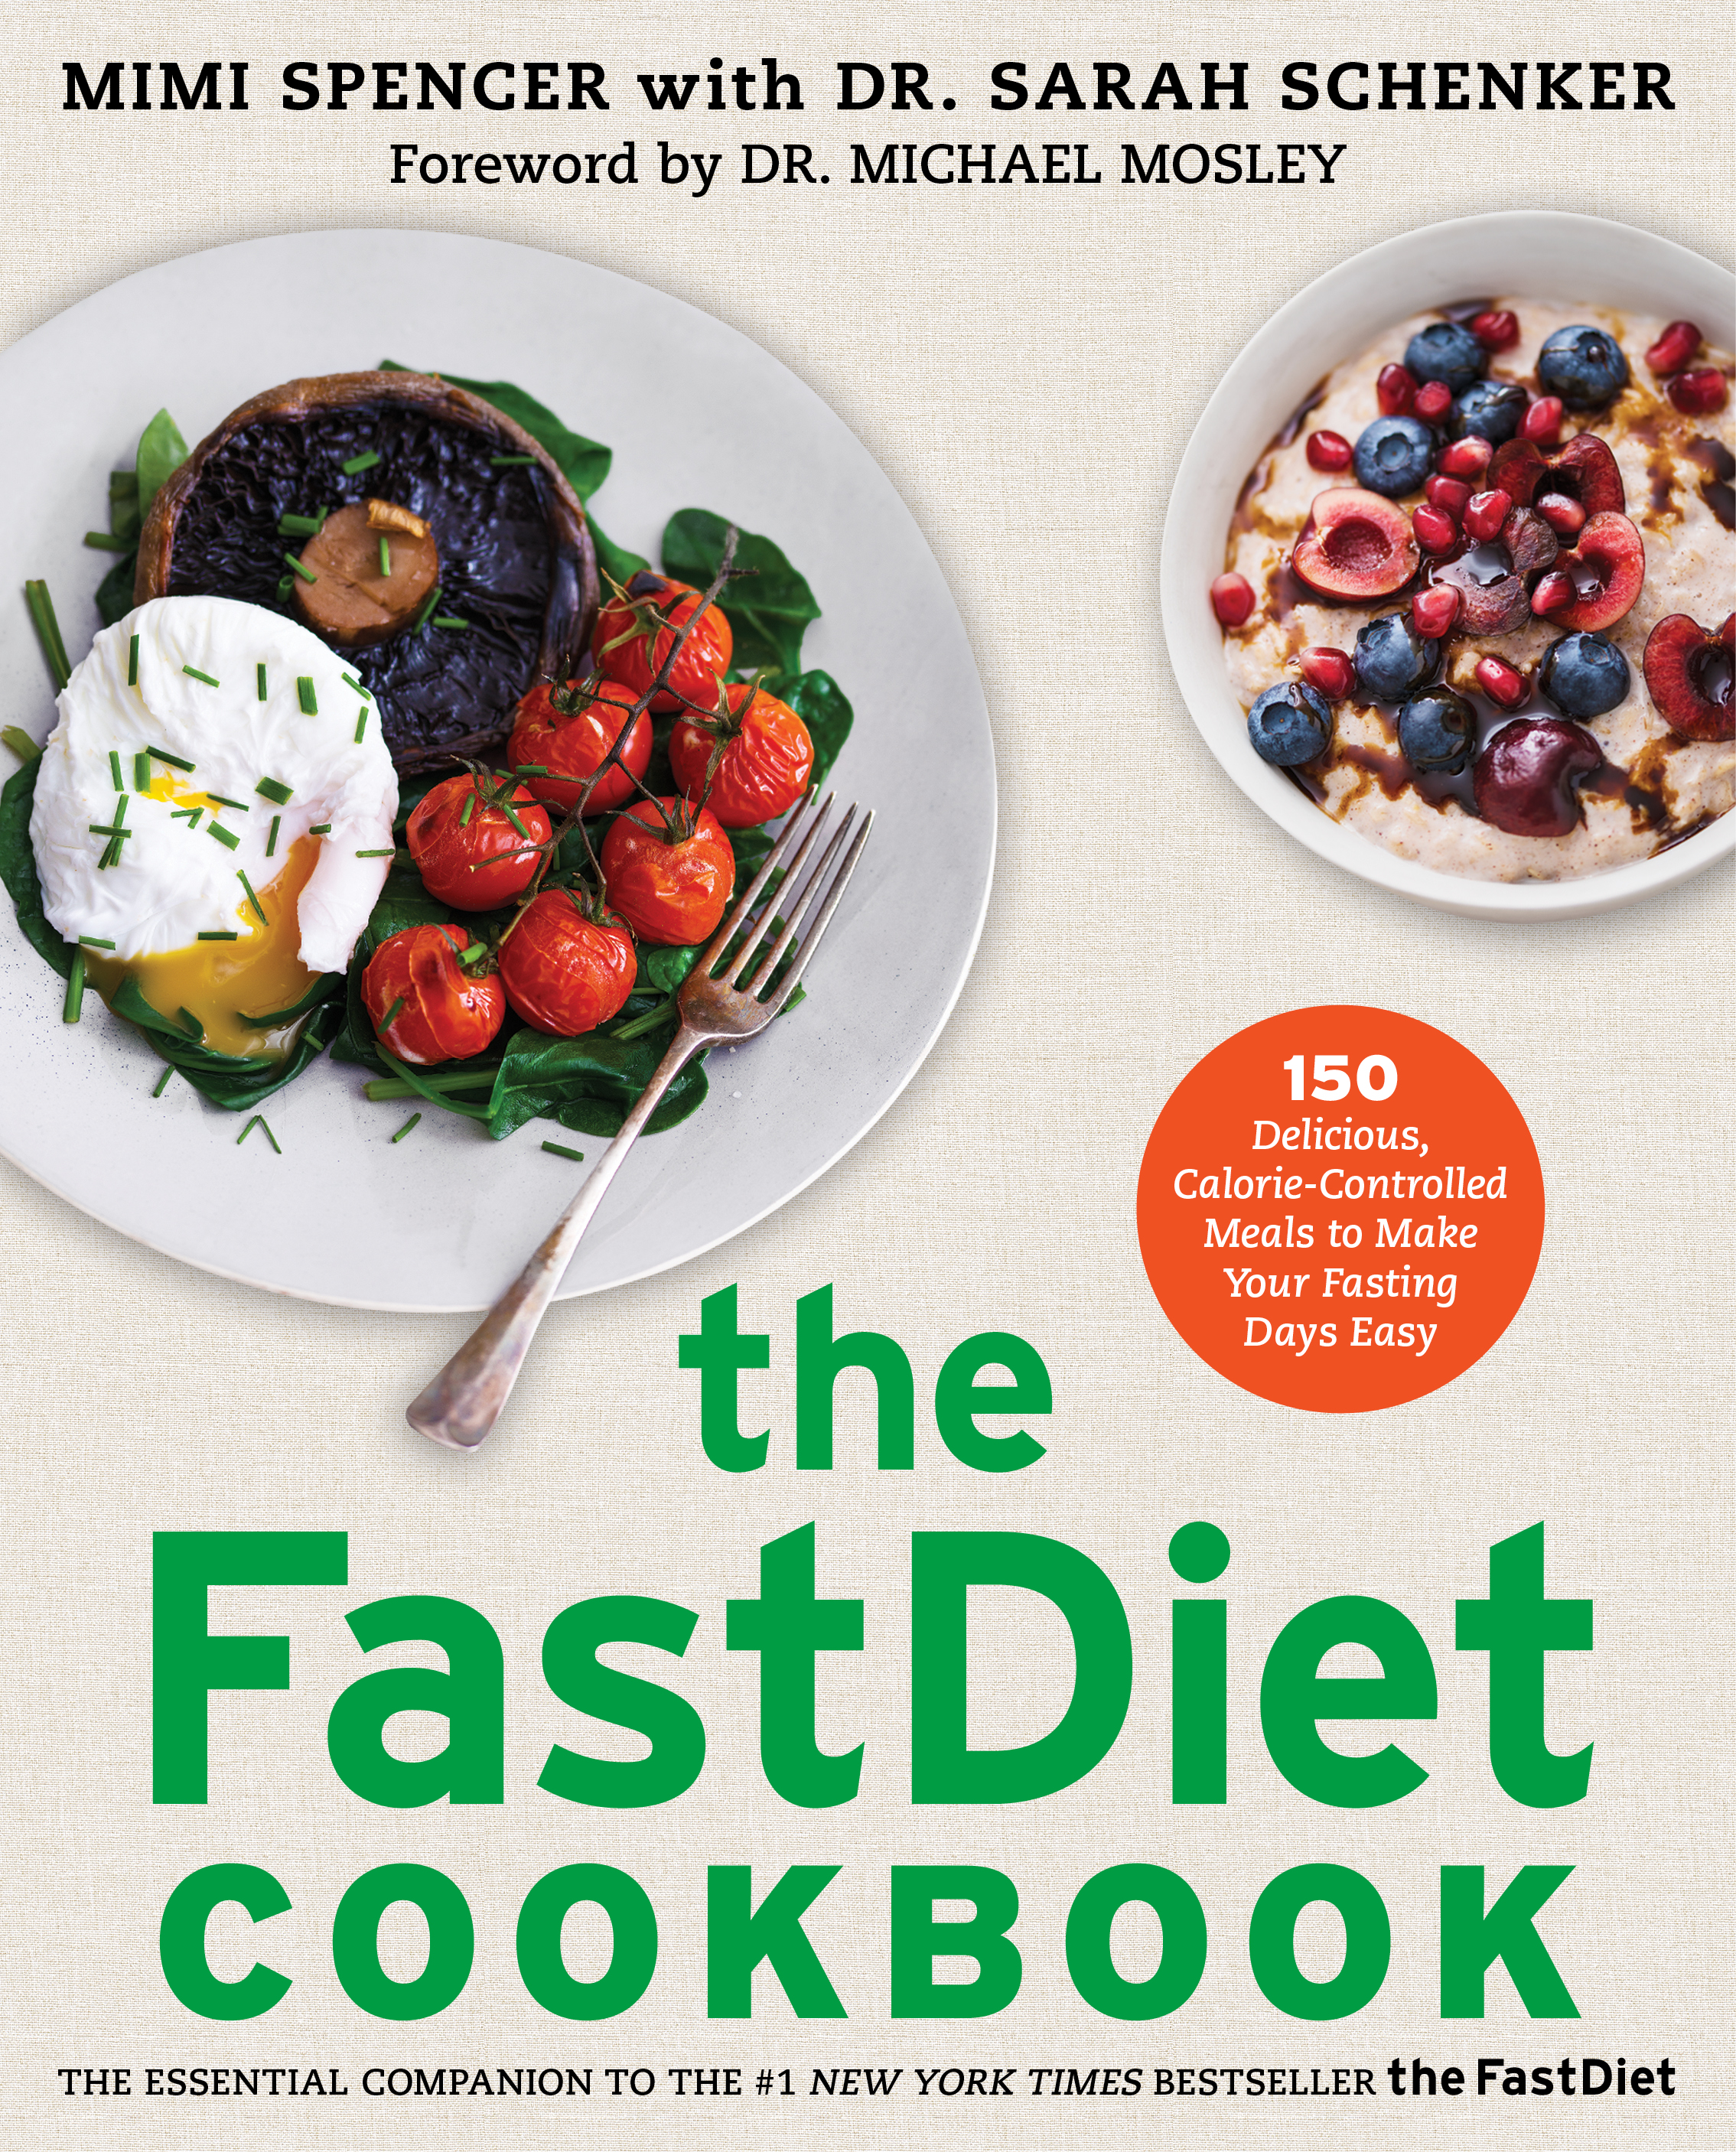 The fastdiet cookbook book by mimi spencer sarah schenker cvr9781476749198 9781476749198 hr the fastdiet cookbook forumfinder Gallery